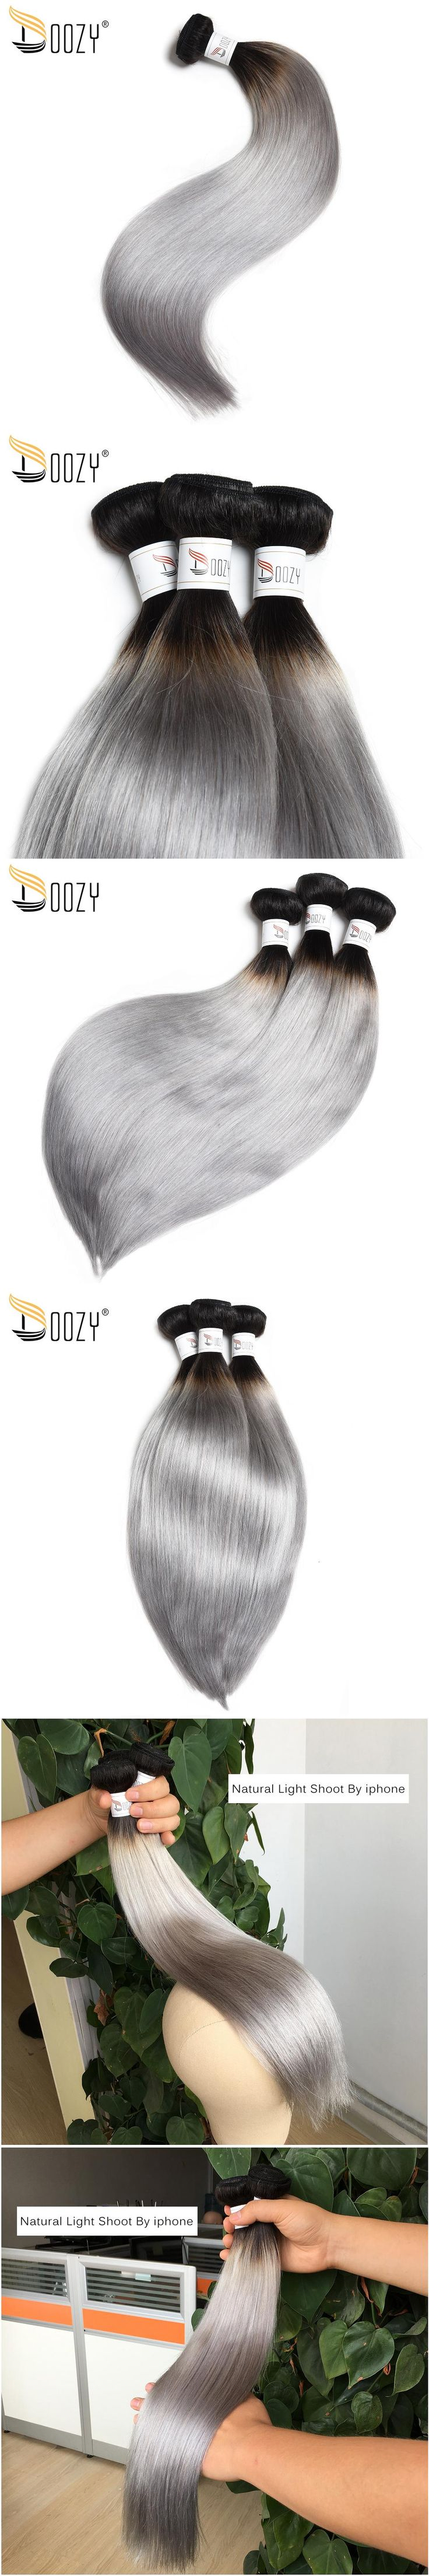 Doozy ombre gray straight Brazilian human hair bundles double weft hair extensions non remy two tone color 1b/grey hair weaving